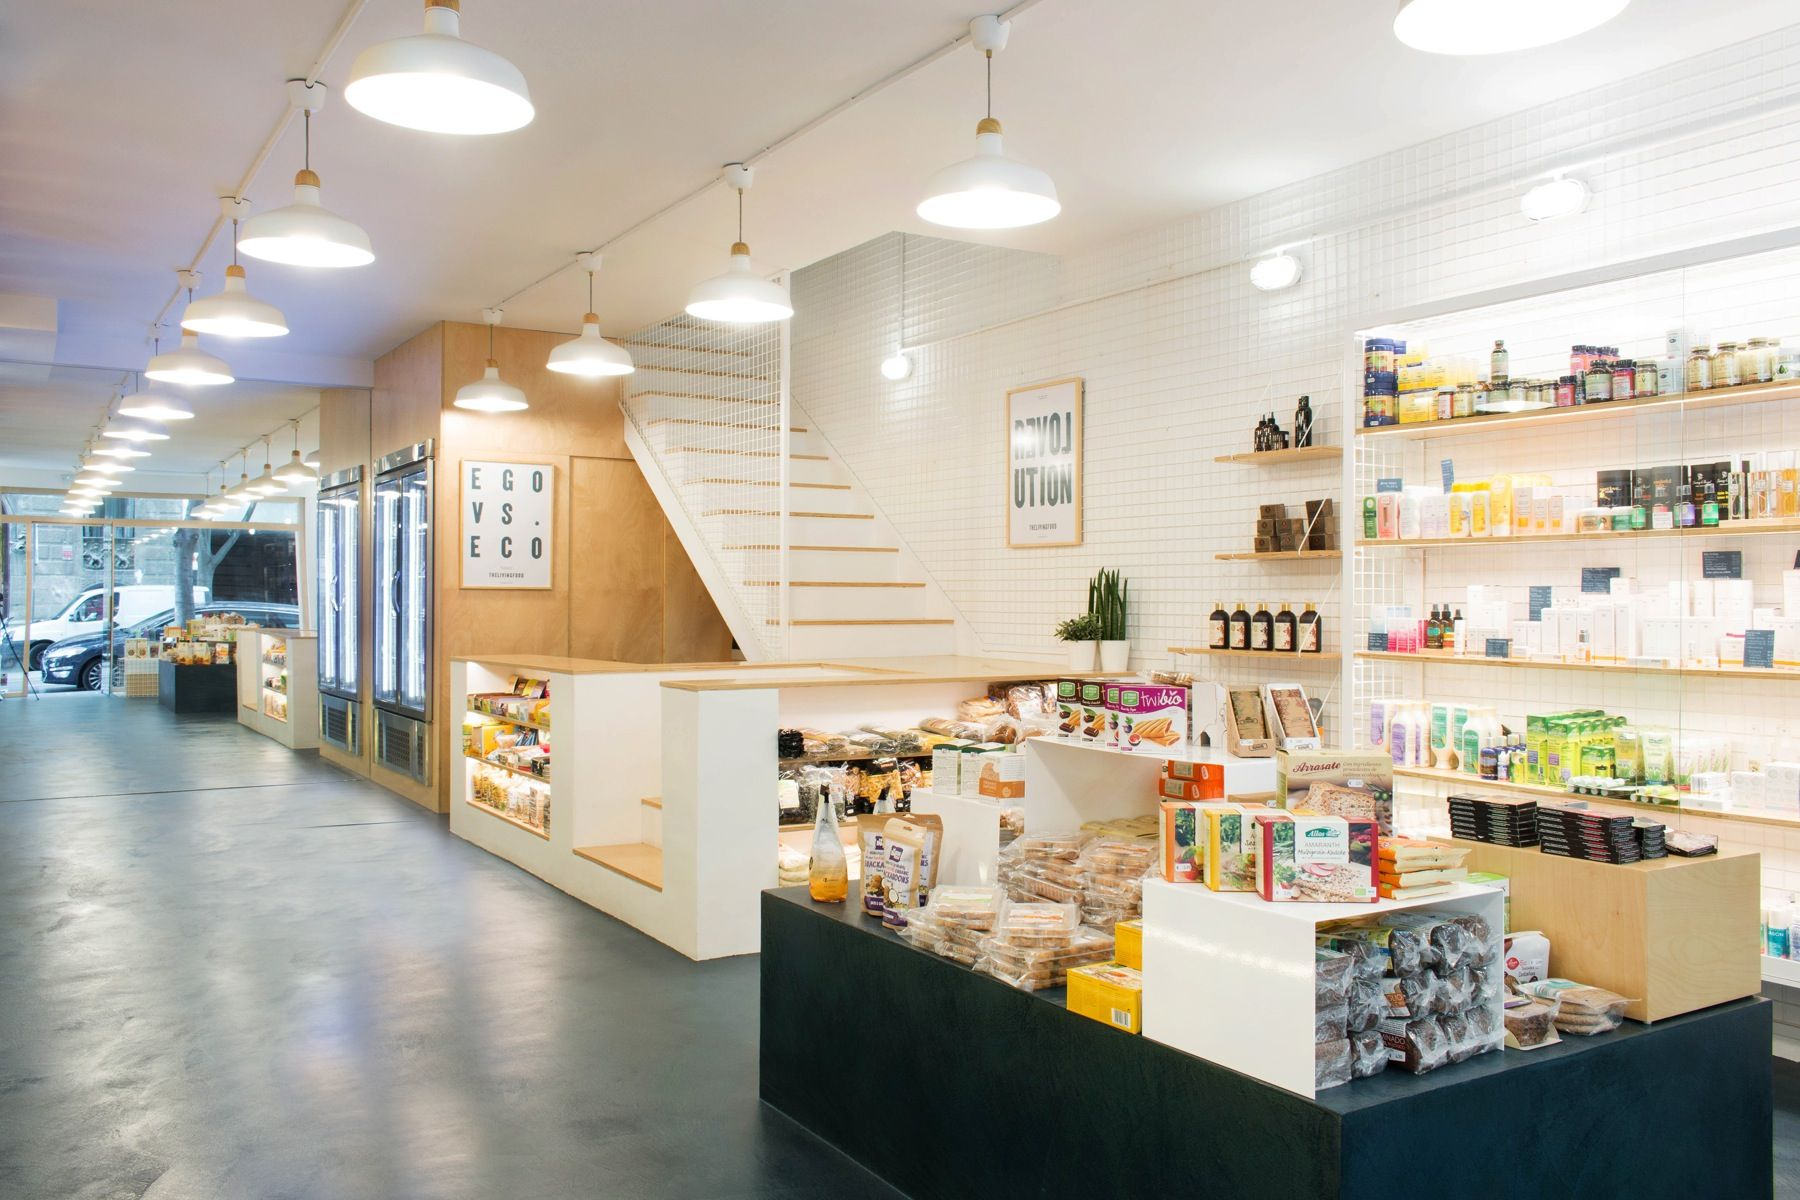 The Living Food Bio Vegan Store By Miriam Barrio Studio Barcelona